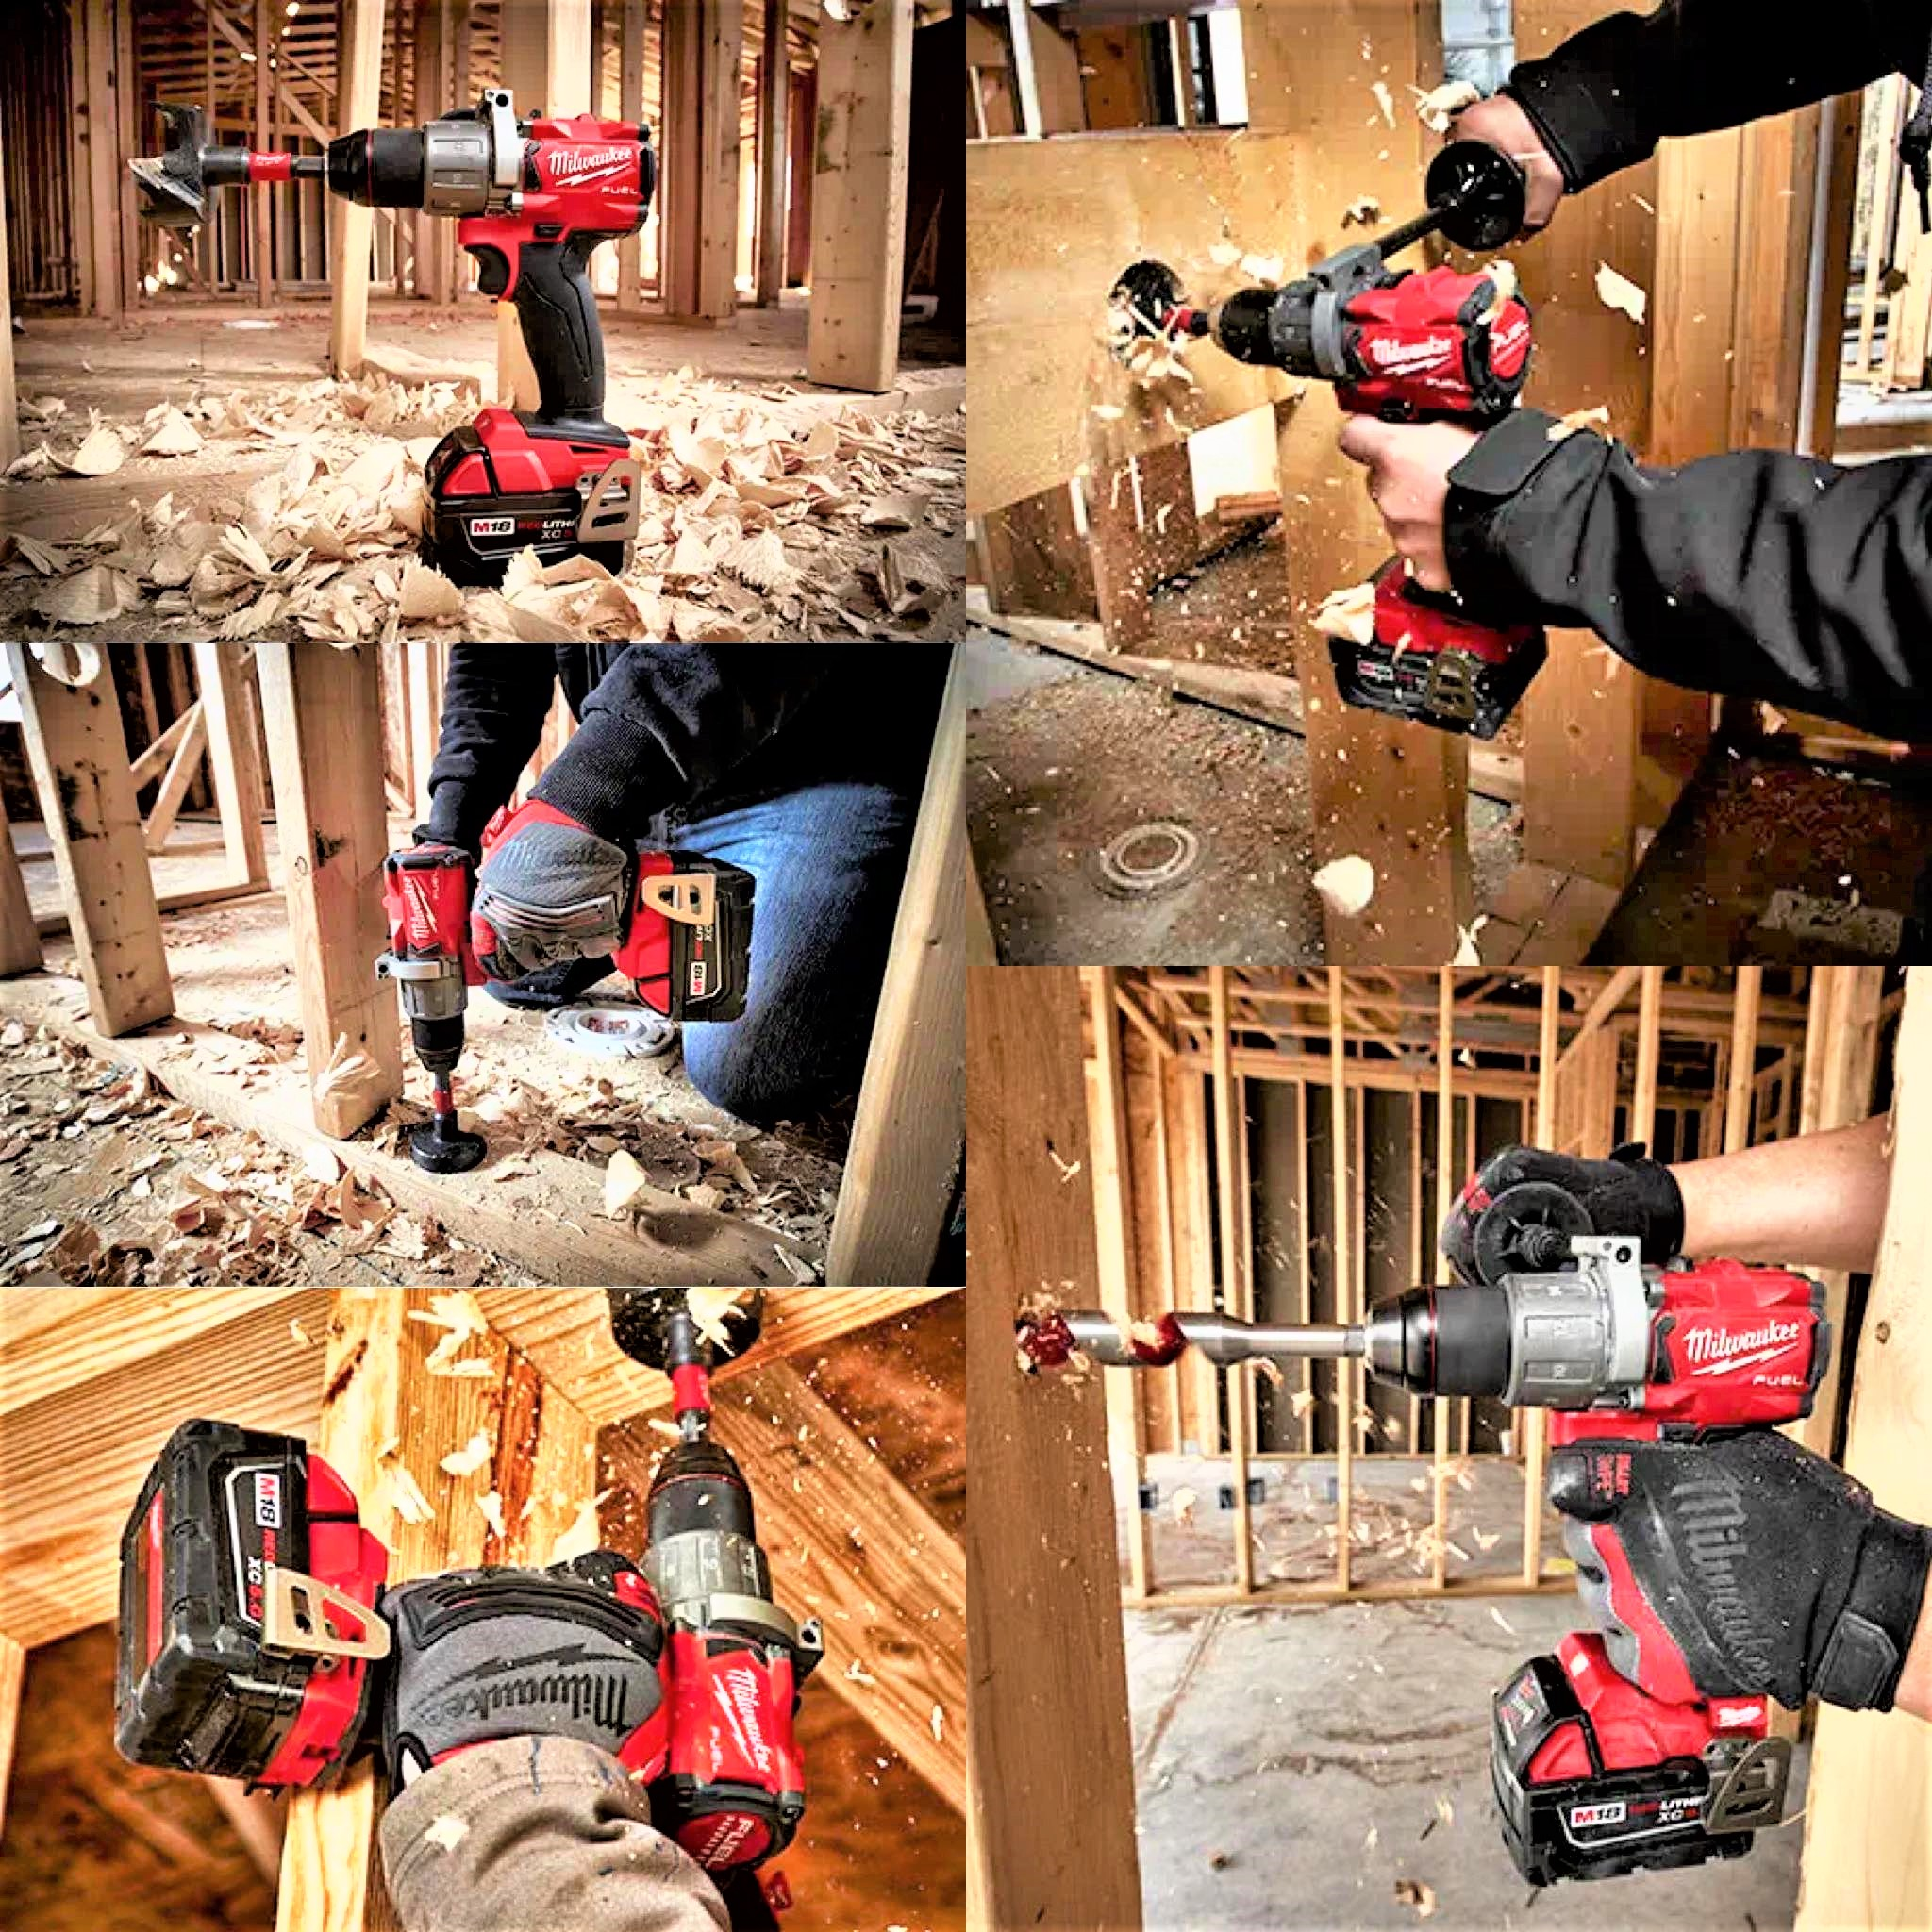 Milwaukee  Cordless Drill 1/2 Hammer M18 Fuel C/W 2 Battery & Case Review